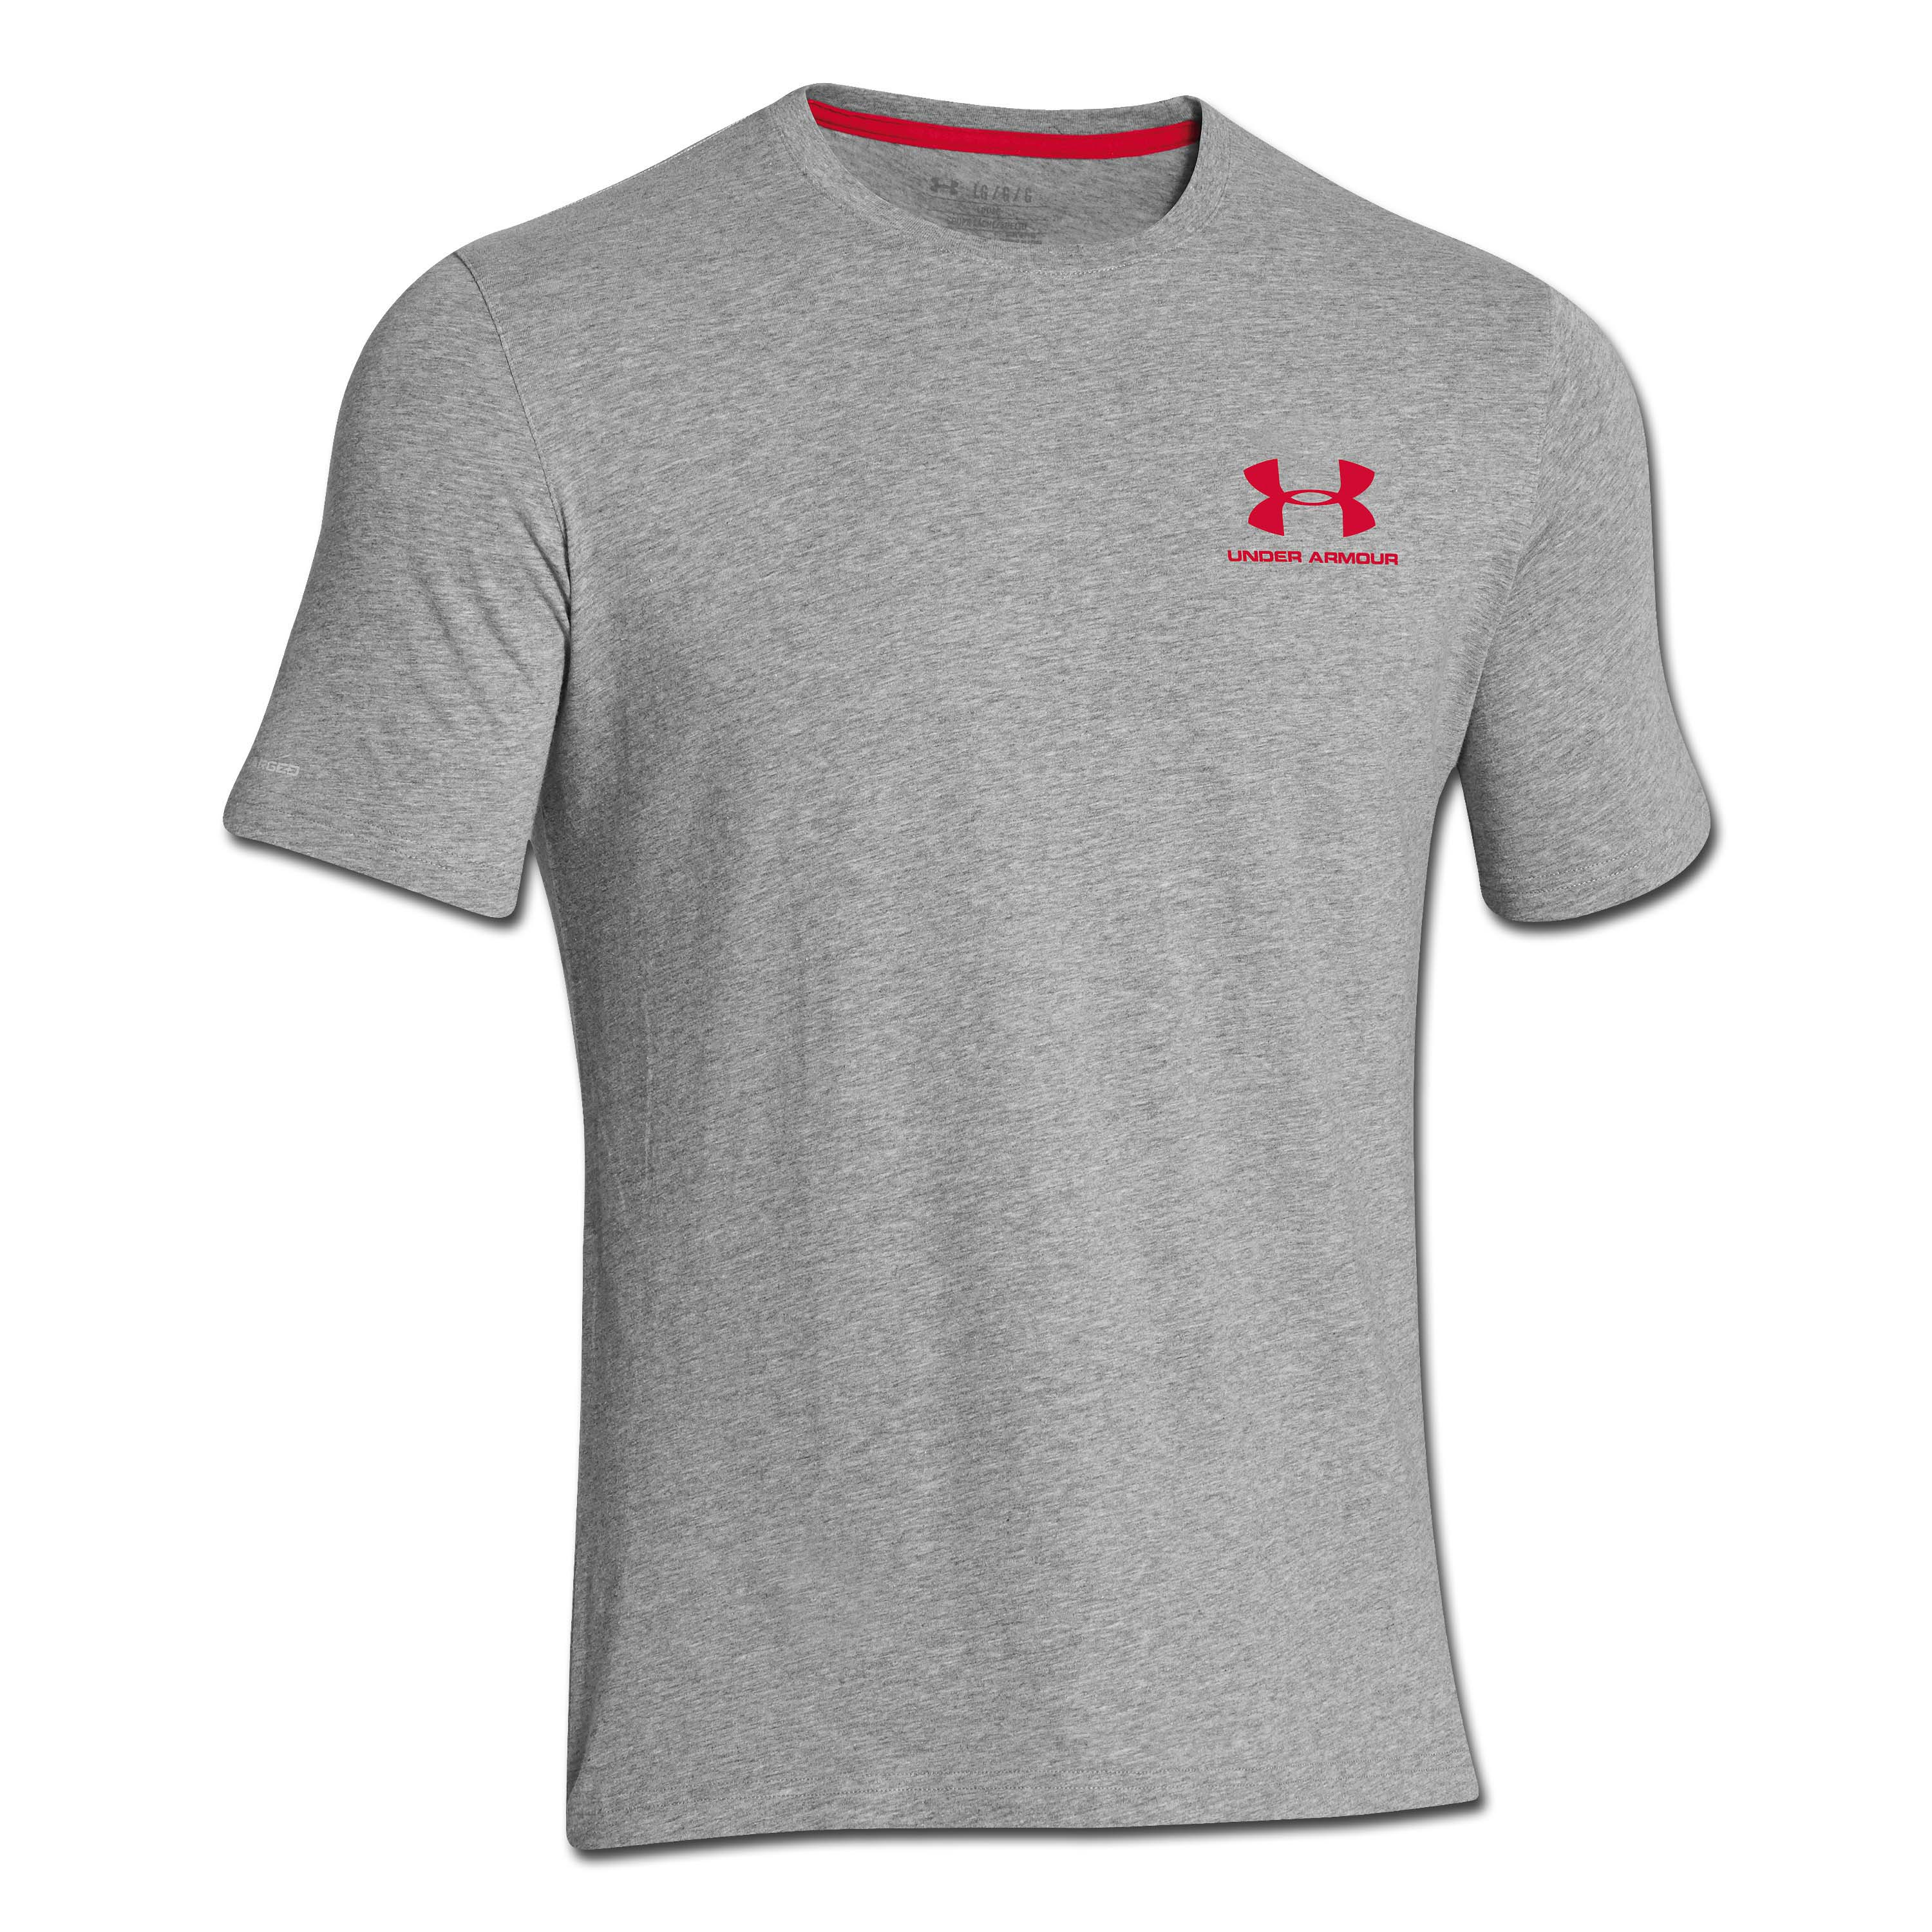 Under Armour Shirt CC Sportstyle grau